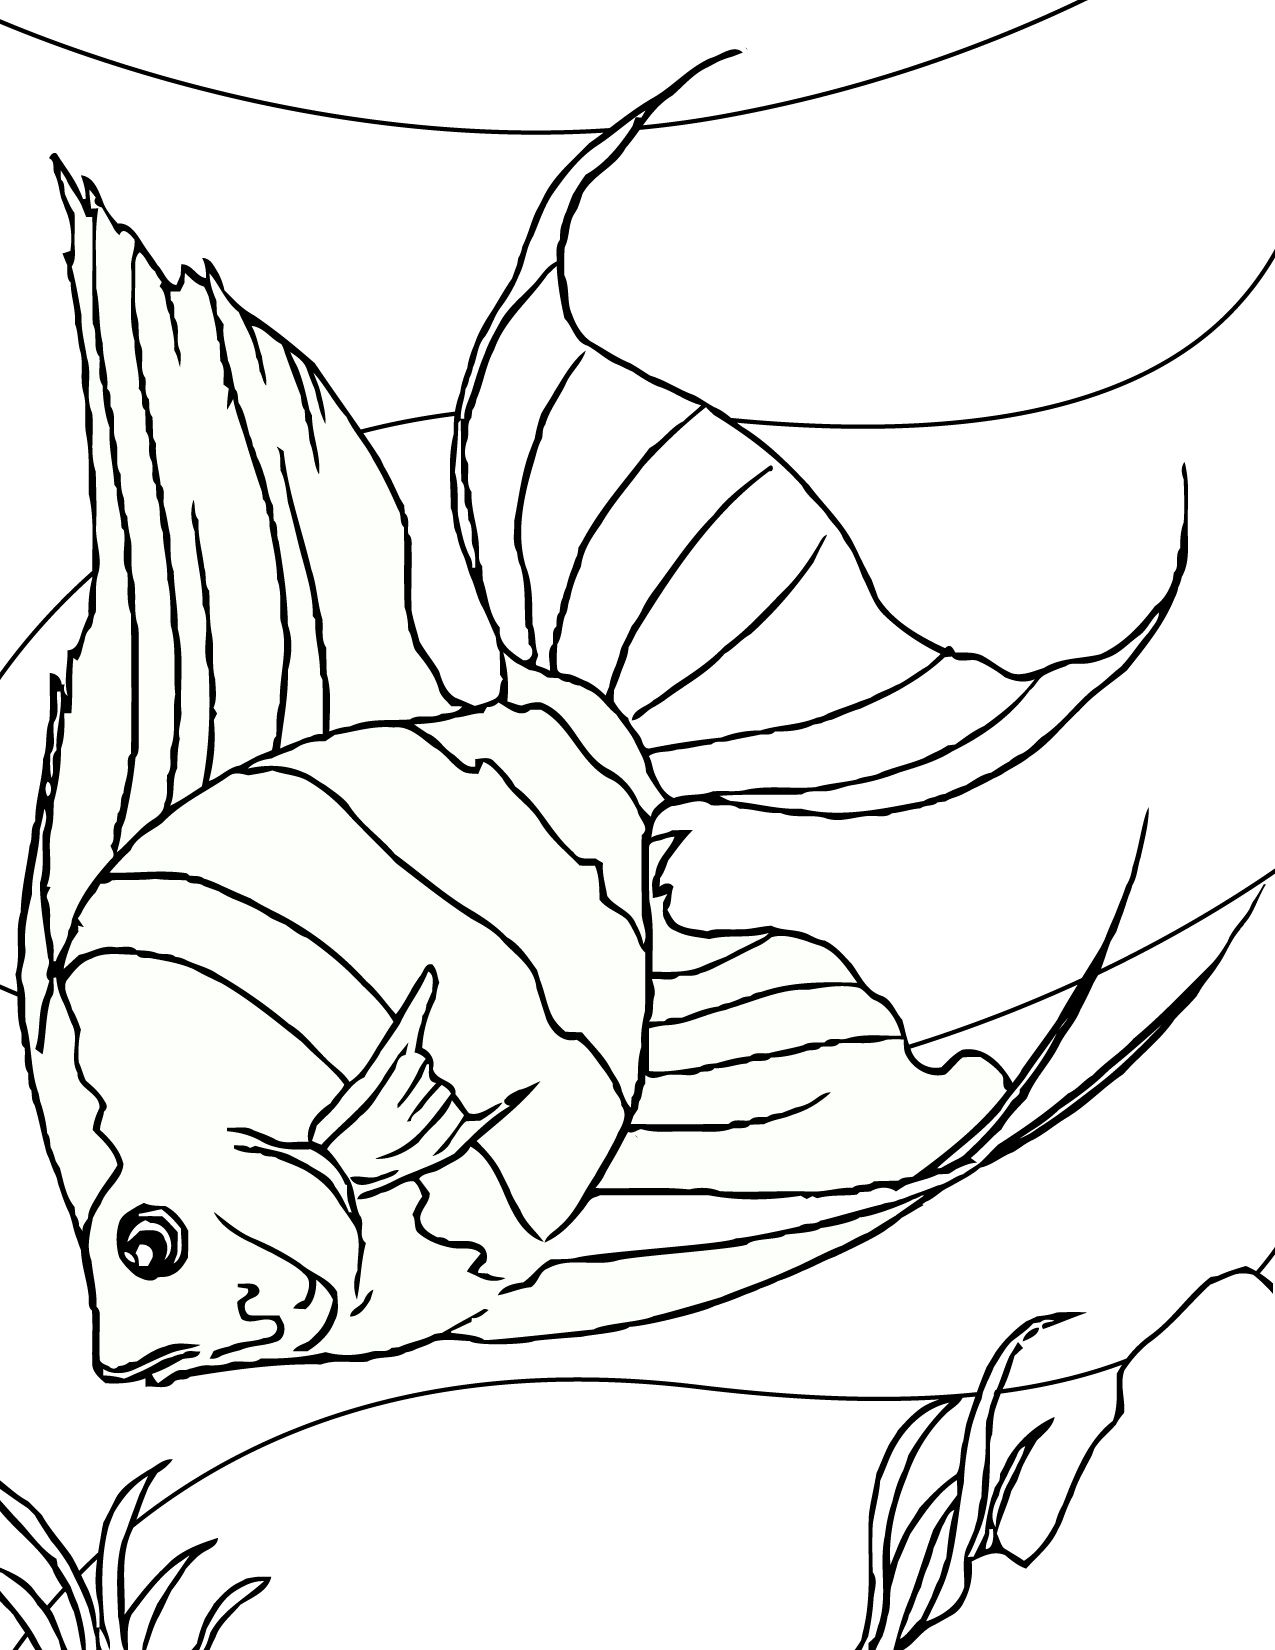 Free Printable Fish Coloring Pages For Kids Fish Coloring Page Fish Printables Coloring Pages